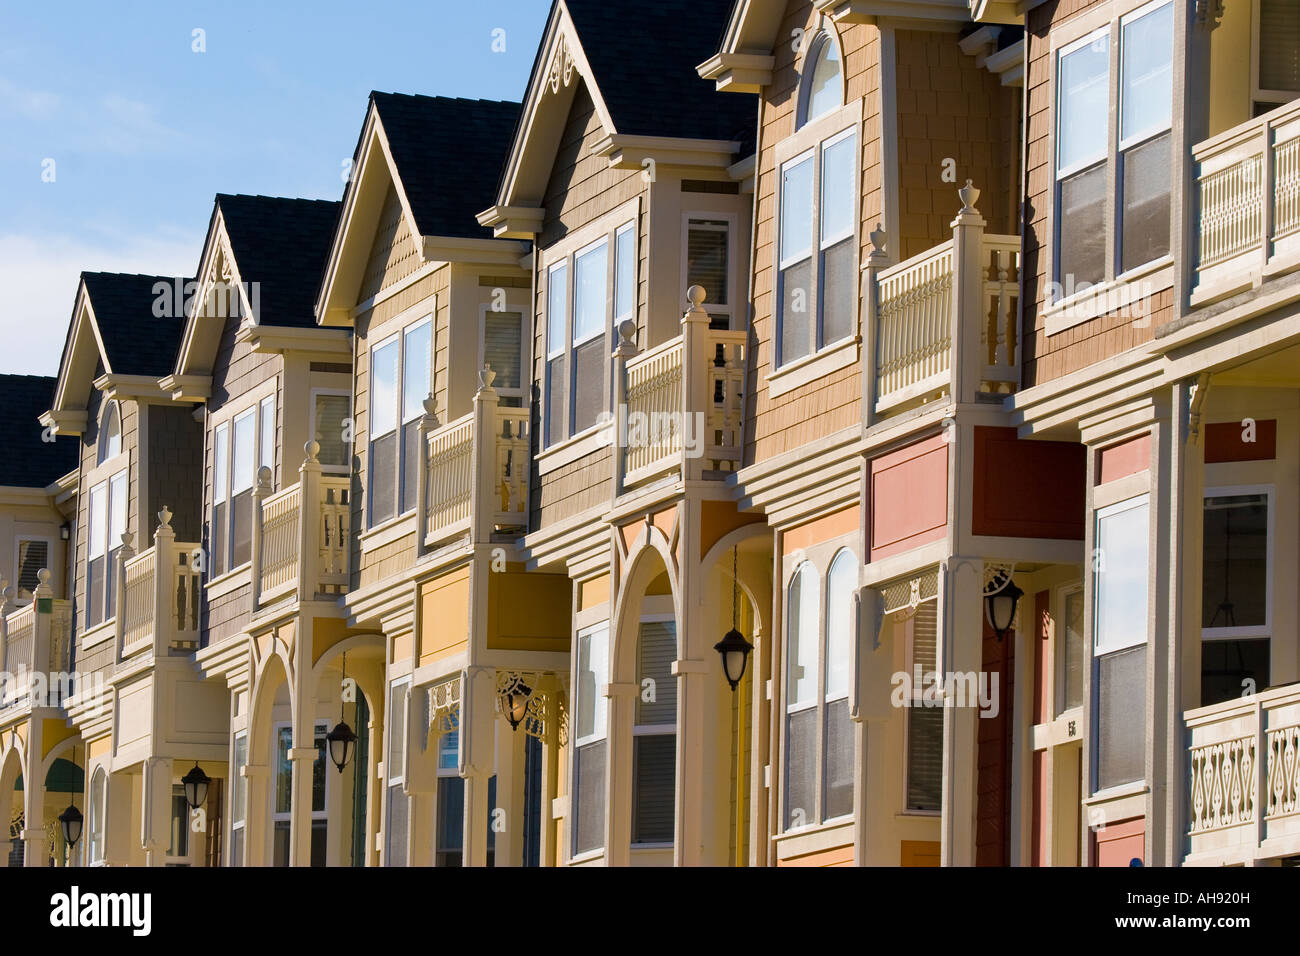 Row houses in the Victorian architecture style with bay windows balconies and arched entrances in Santa Cruz California - Stock Image